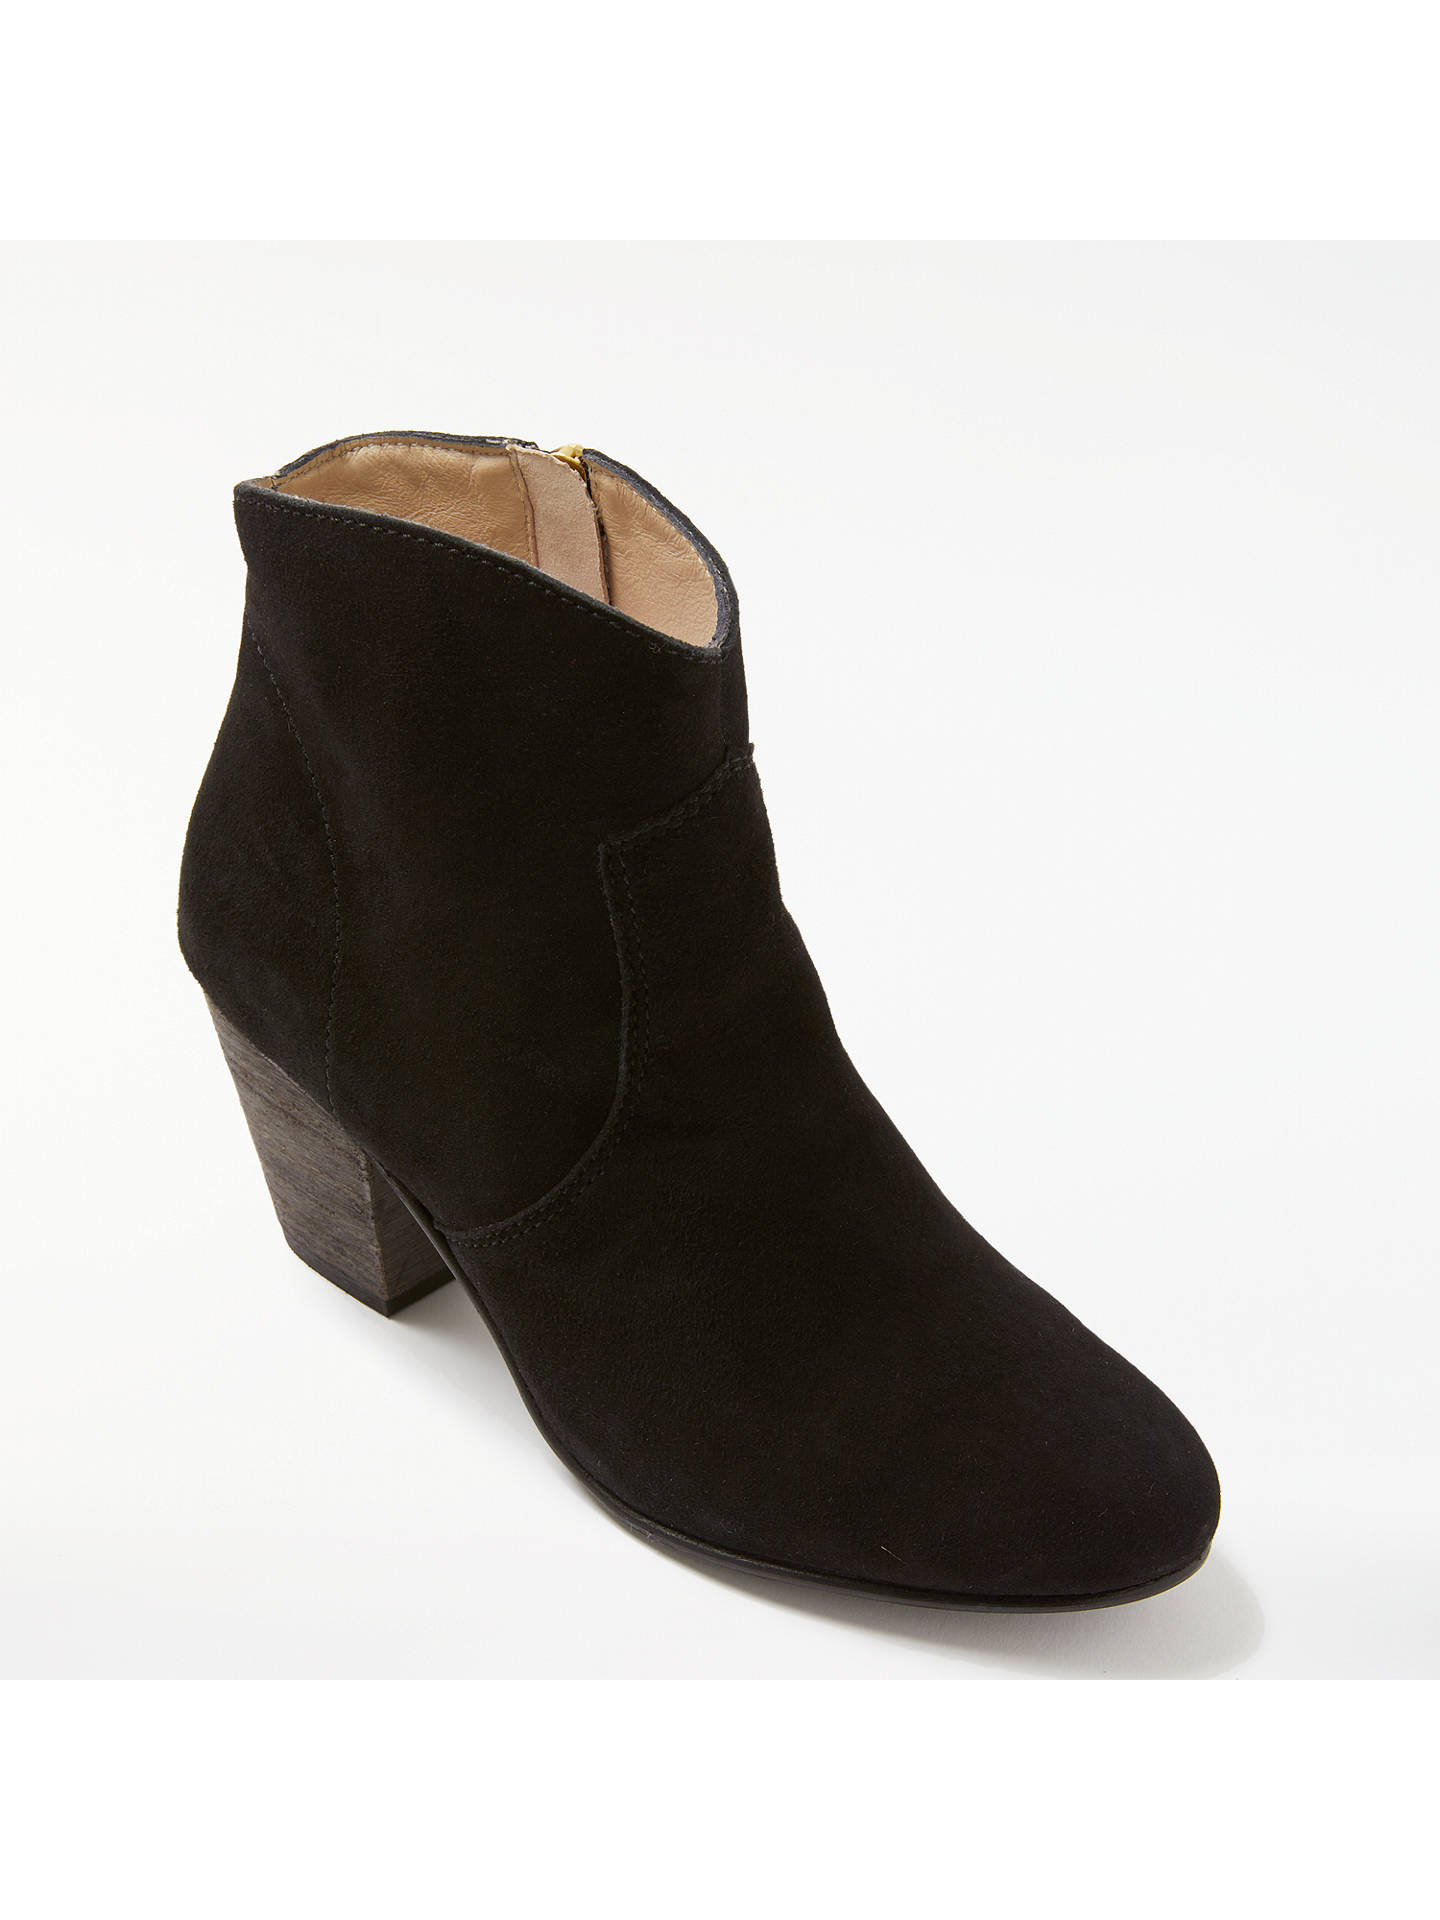 BuyBoden Boho Block Heeled Ankle Boots, Black Suede, 4 Online at johnlewis.com